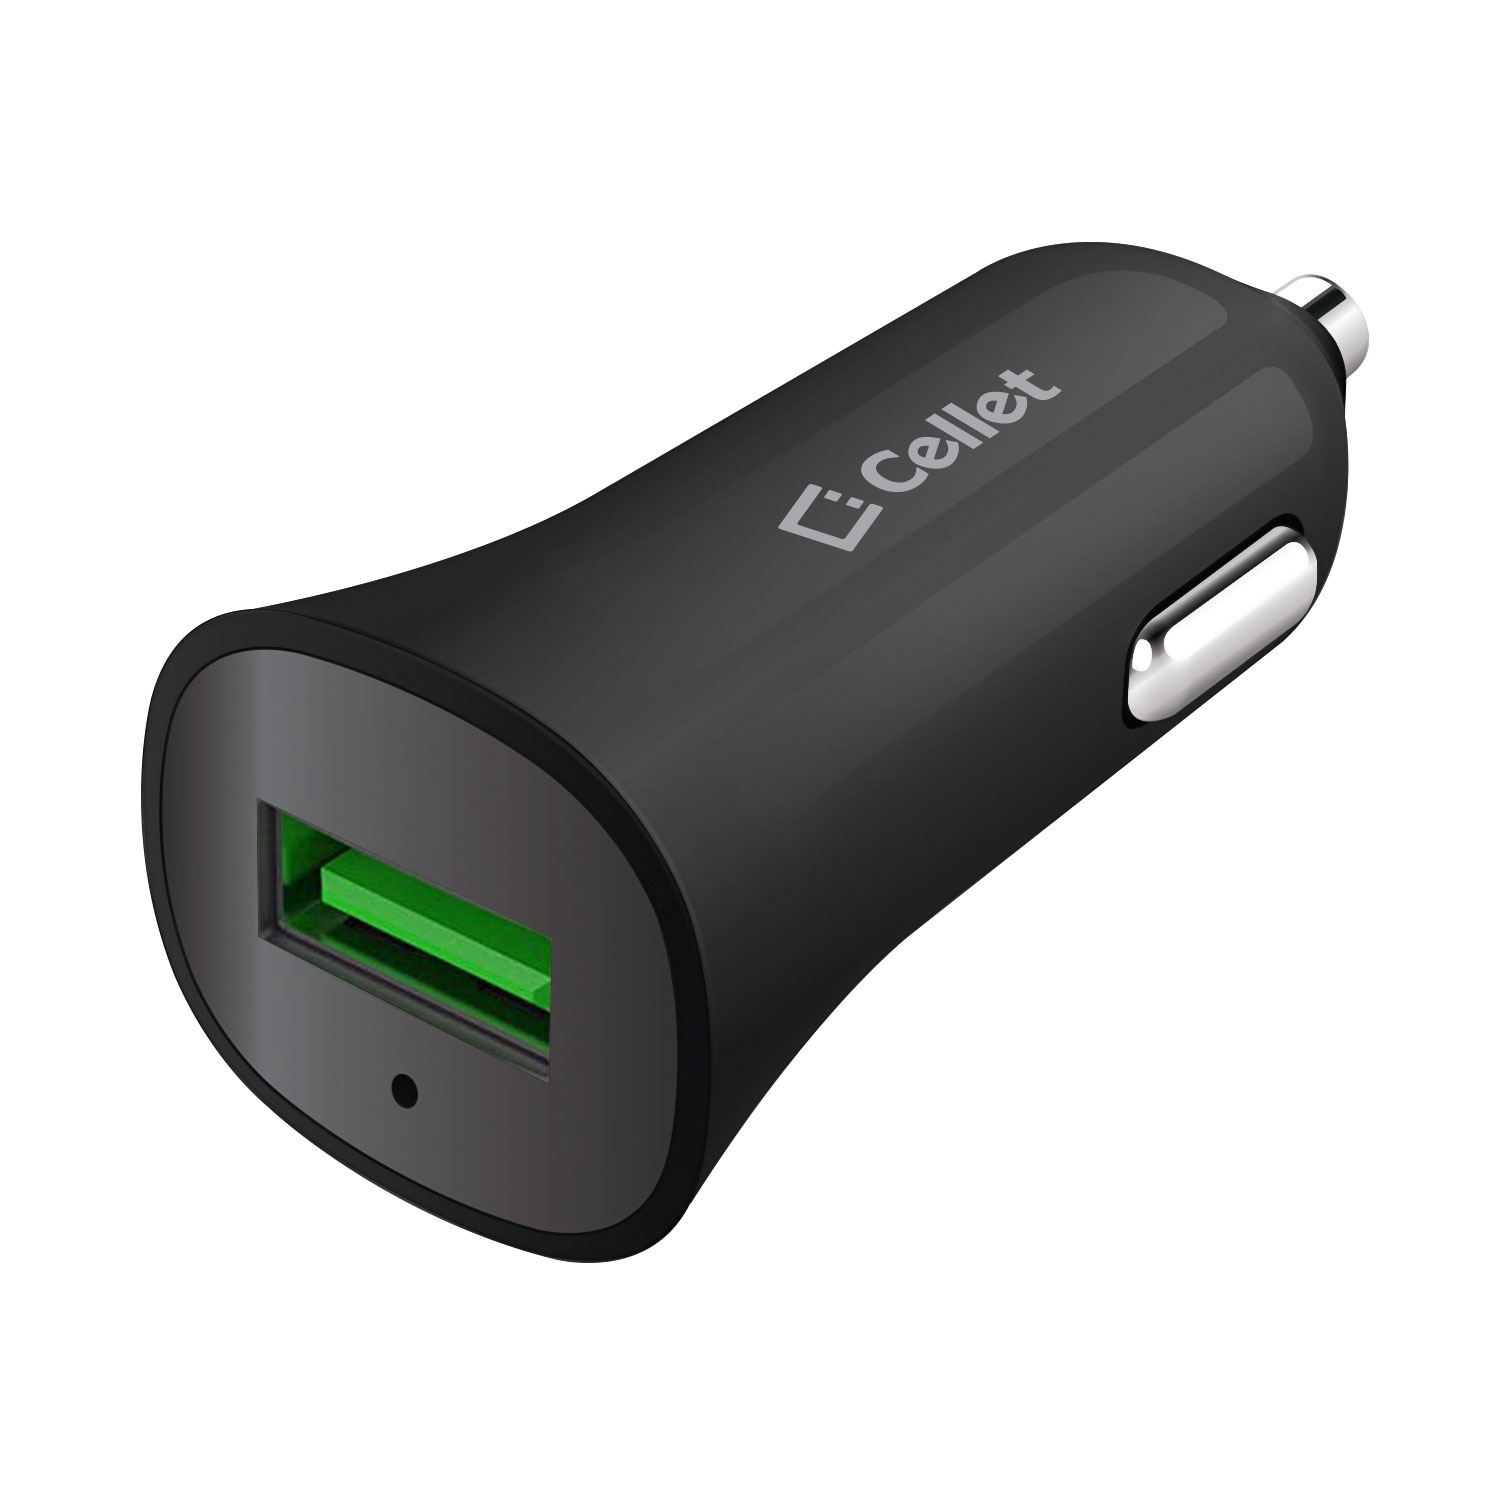 LG Q6 Car Charger Quick Charge 3.0 Black 3.3ft